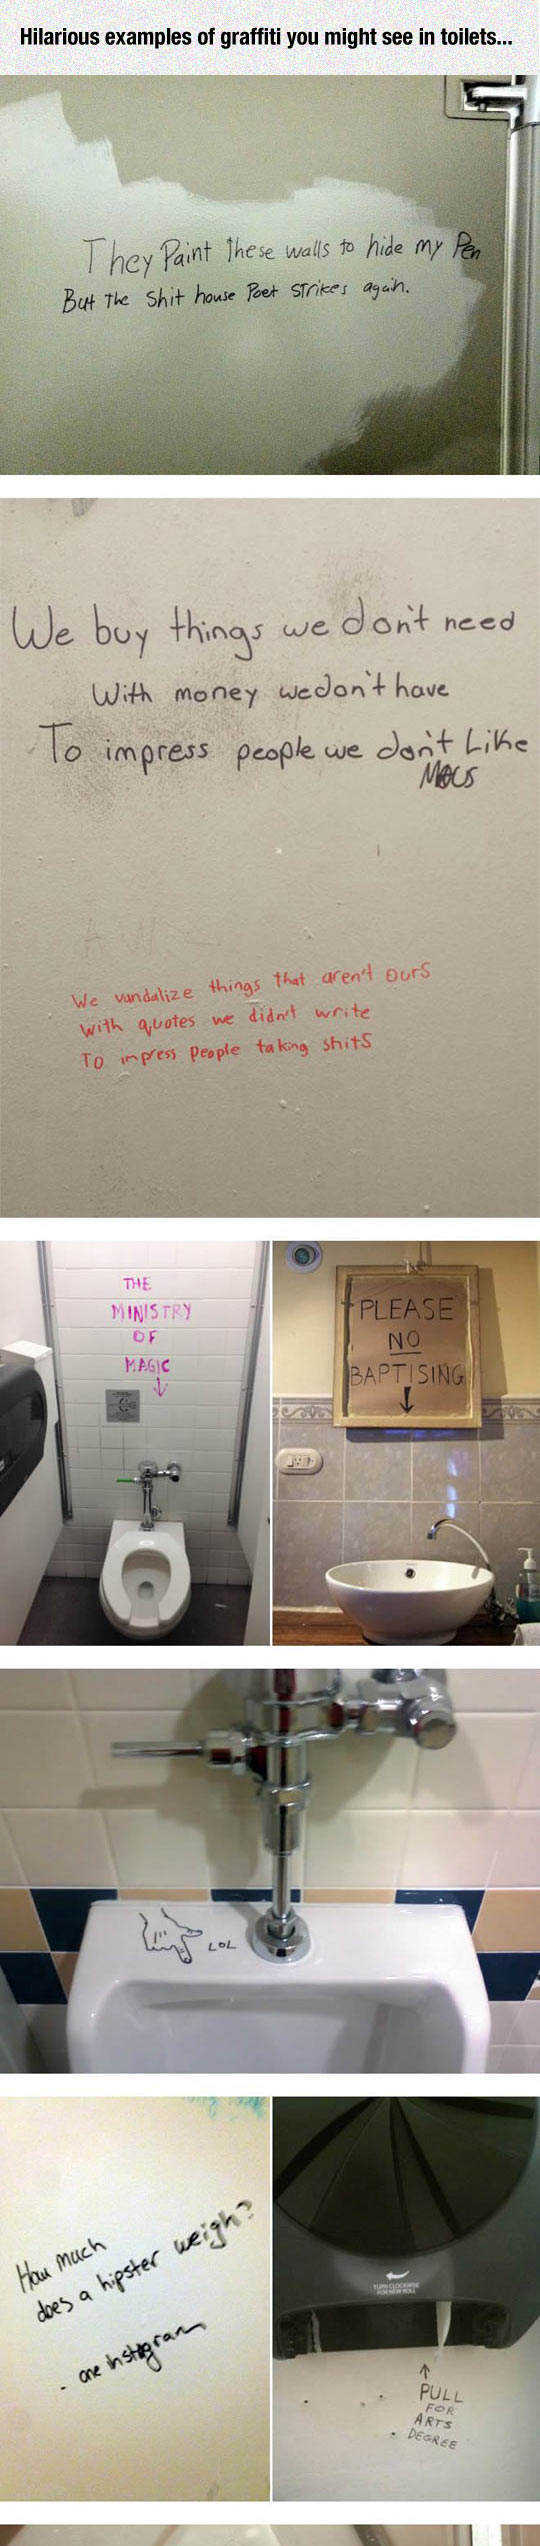 The Best Toilet Graffiti